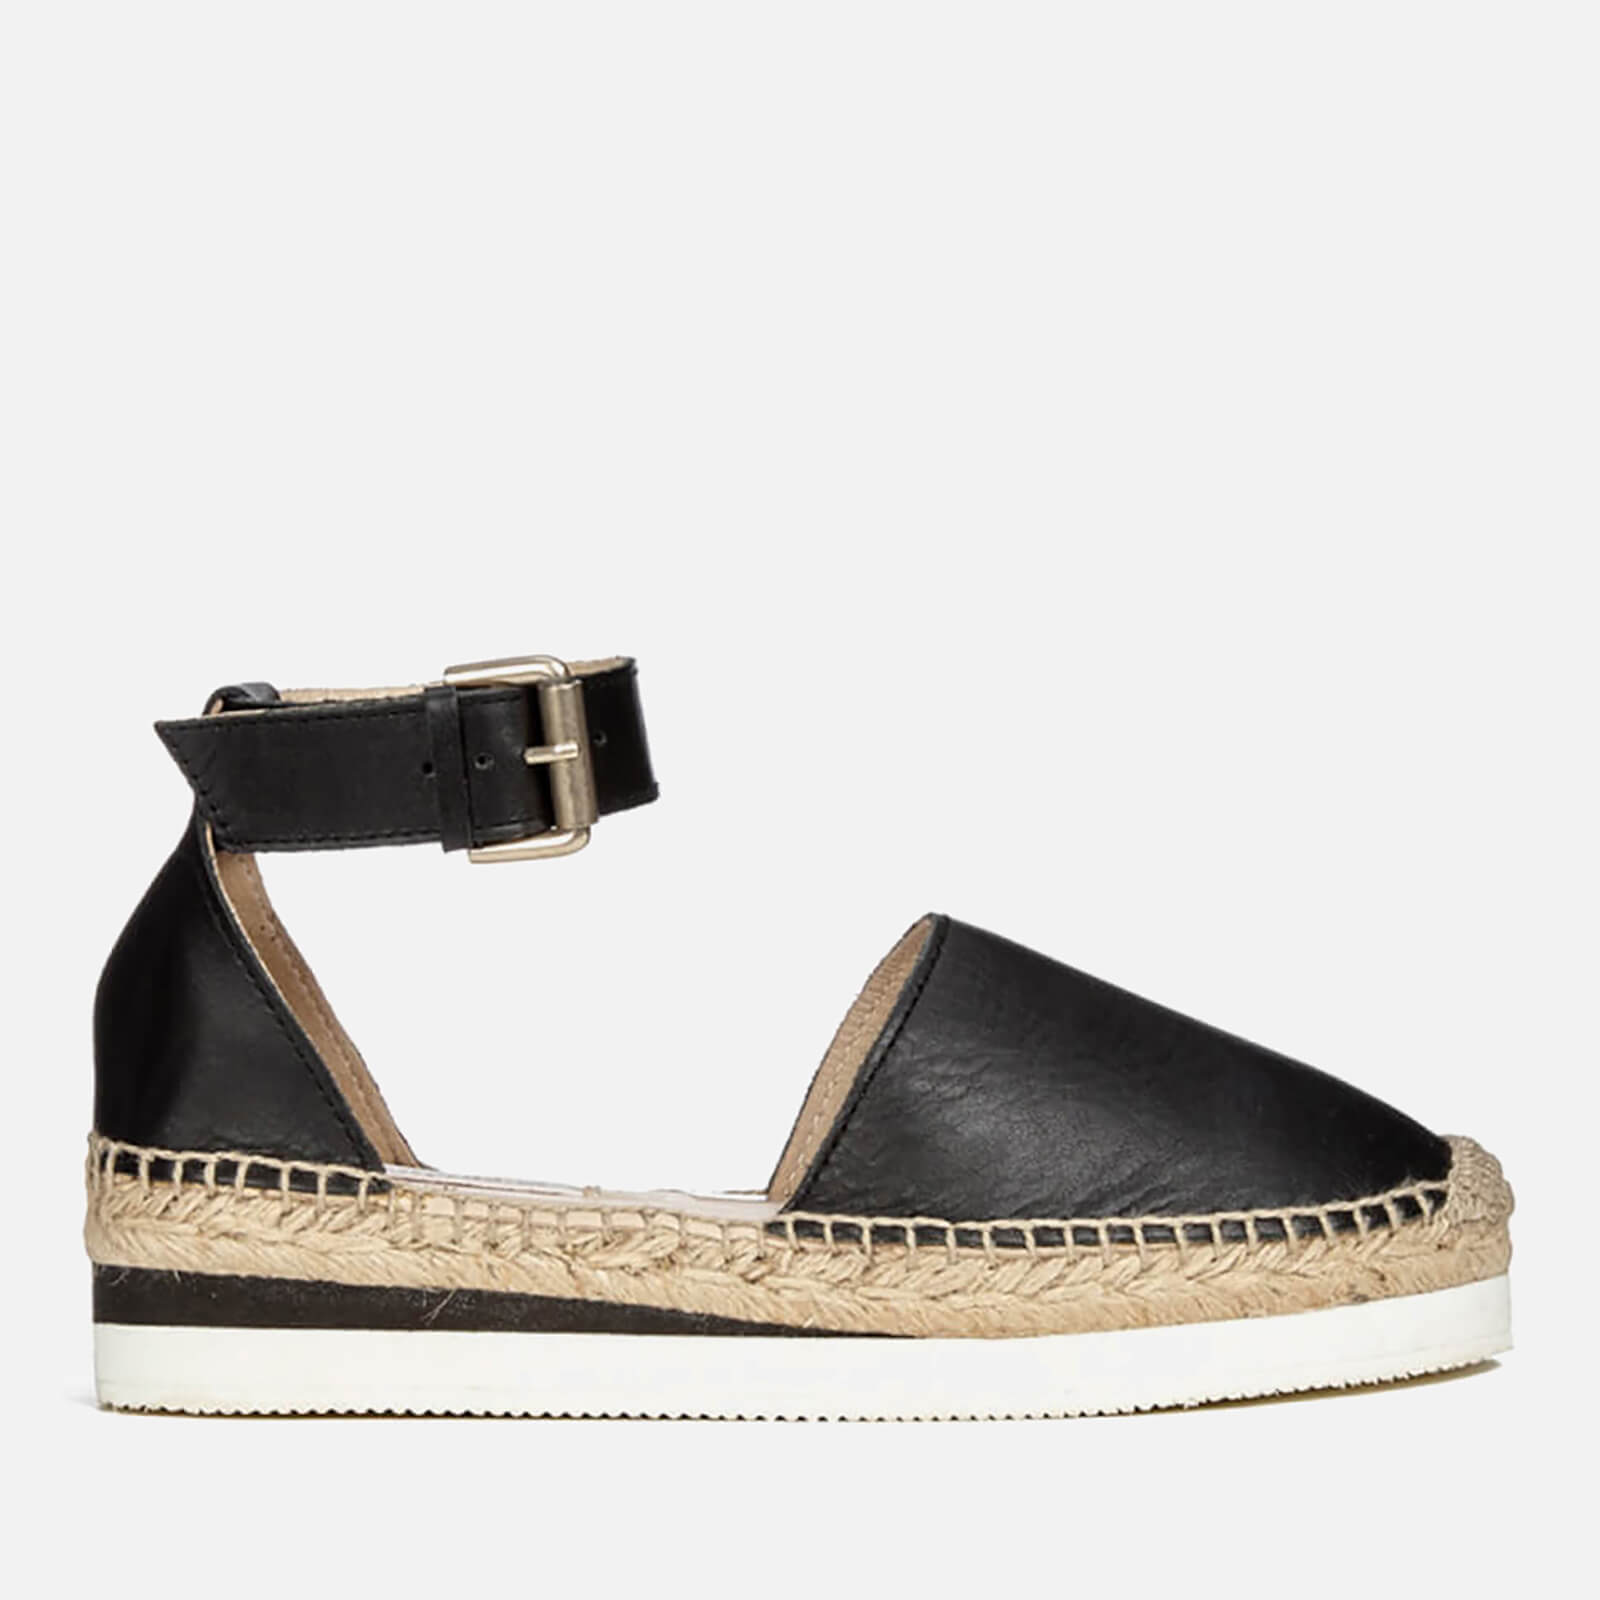 946f359975 See By Chloé Women's Leather Espadrille Flat Sandals - Black